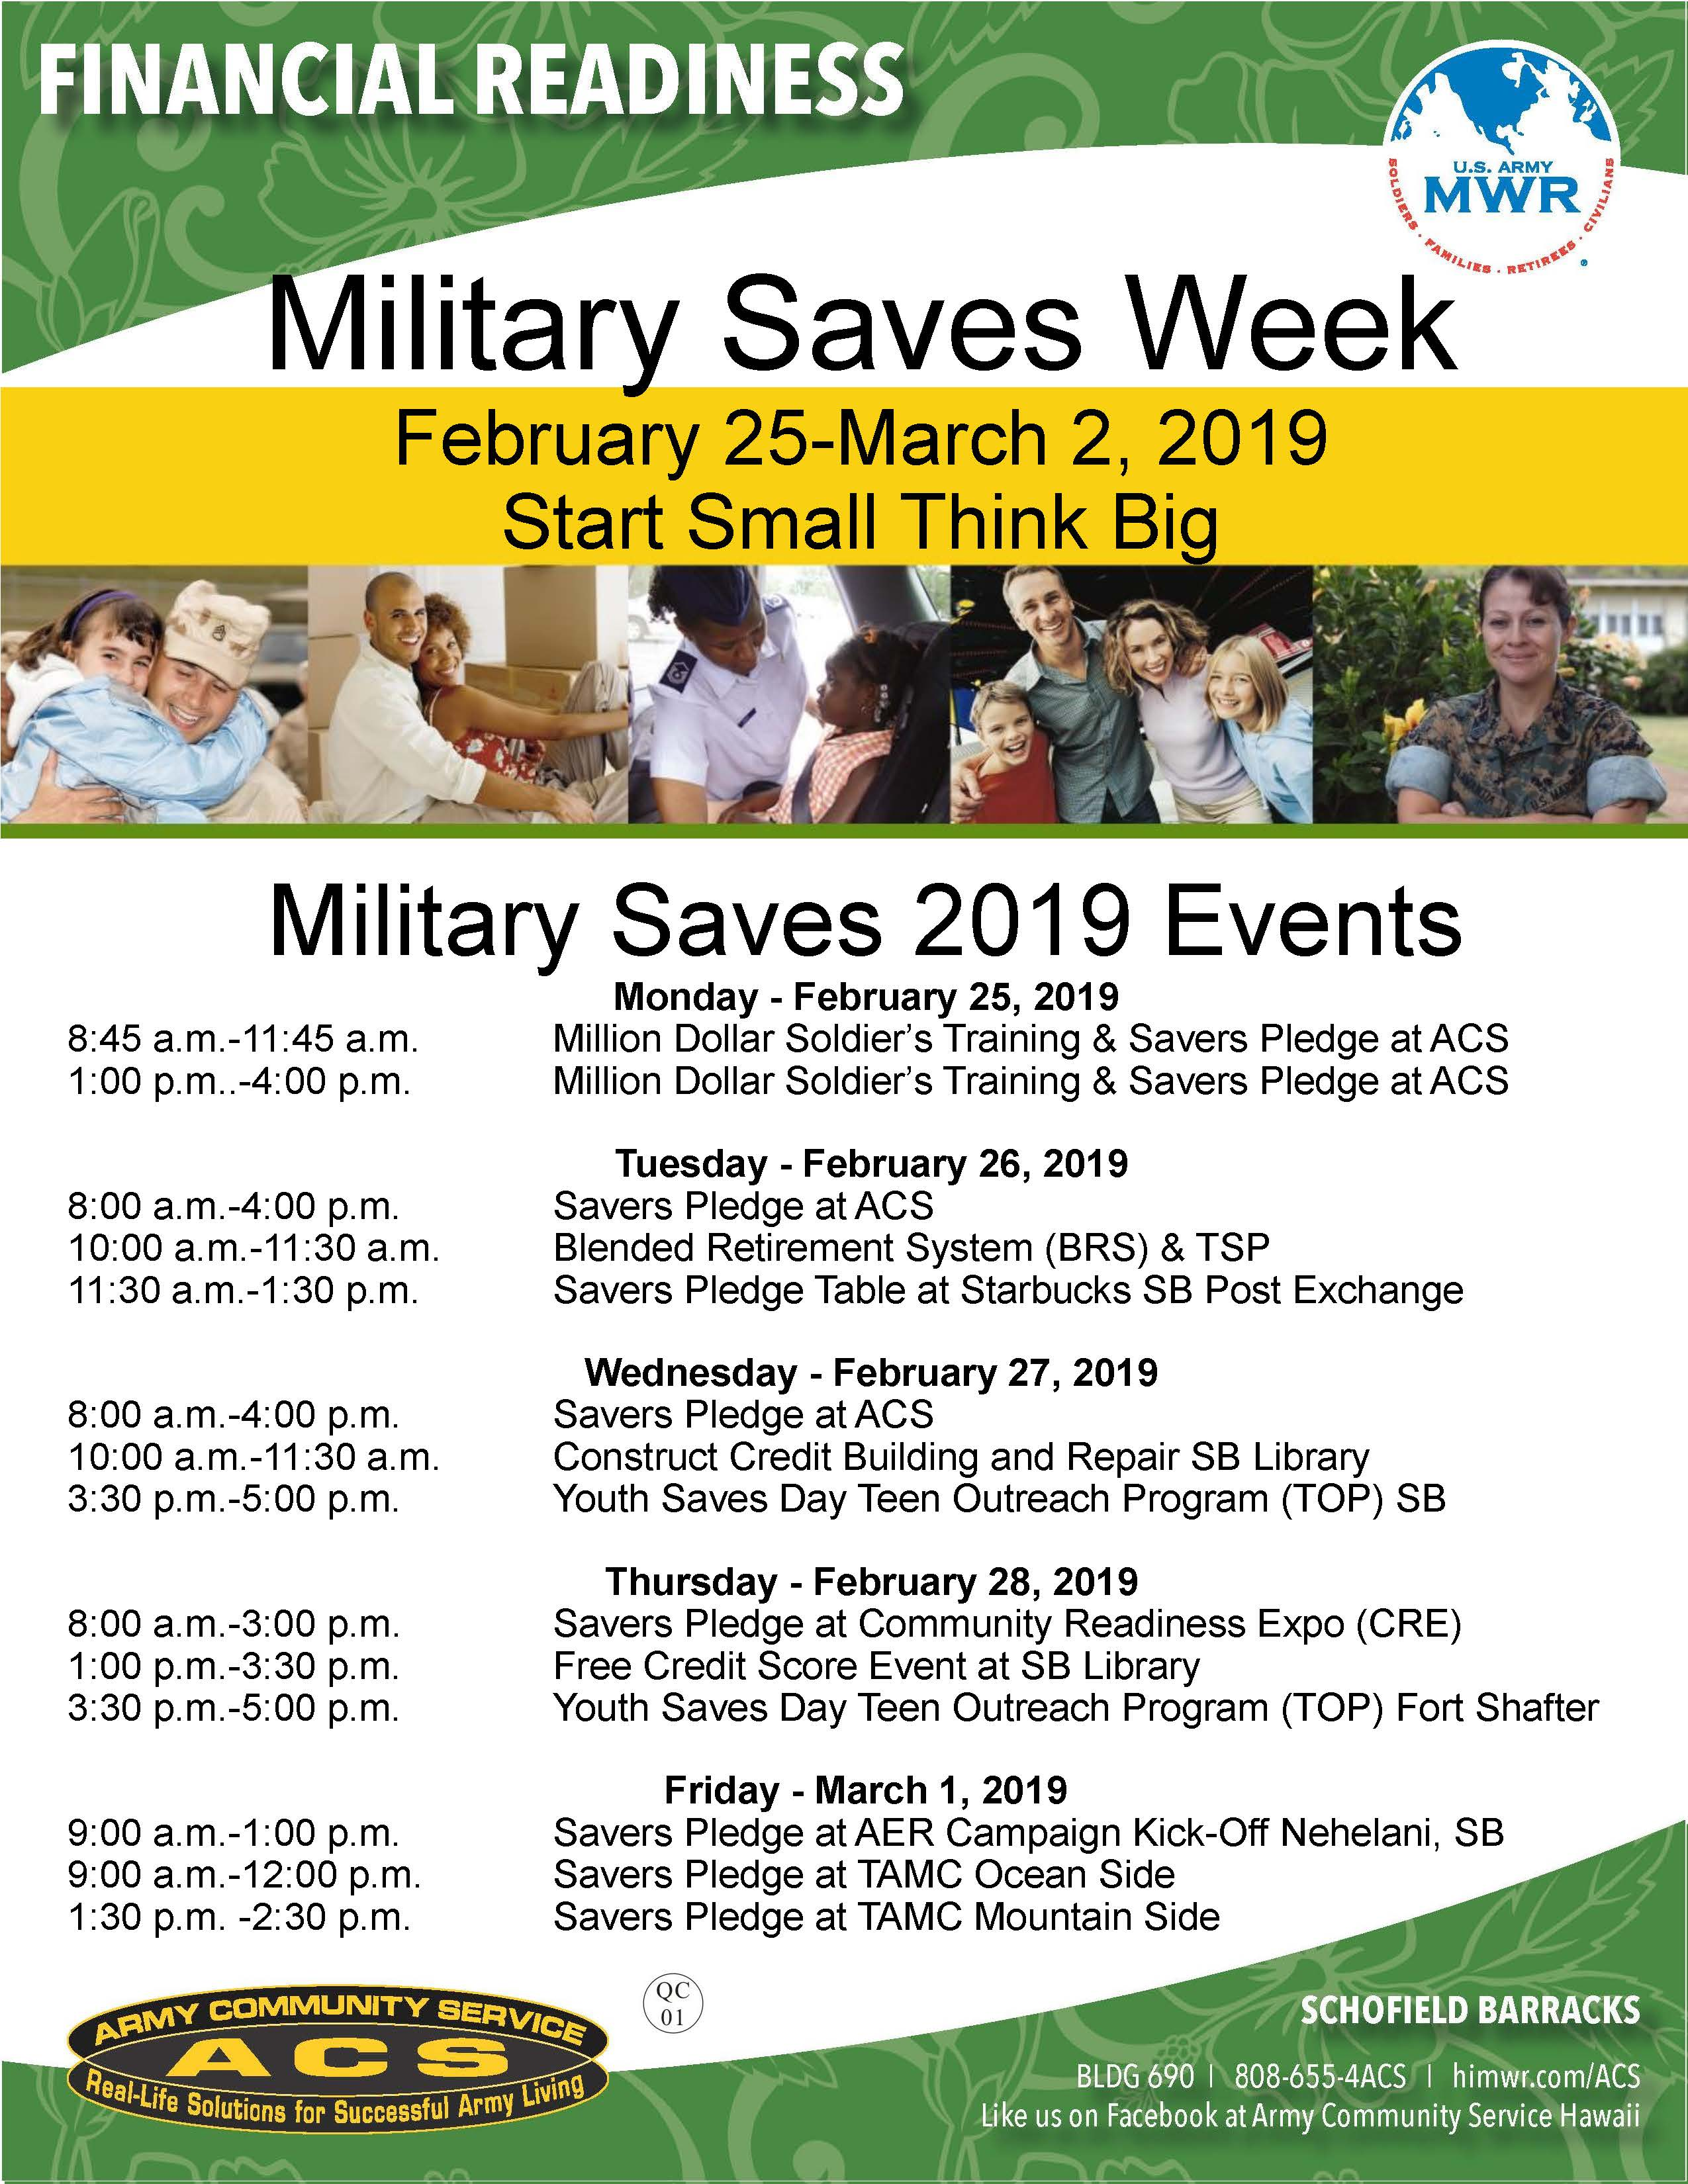 Military Saves Week 2019 Flyer.jpg